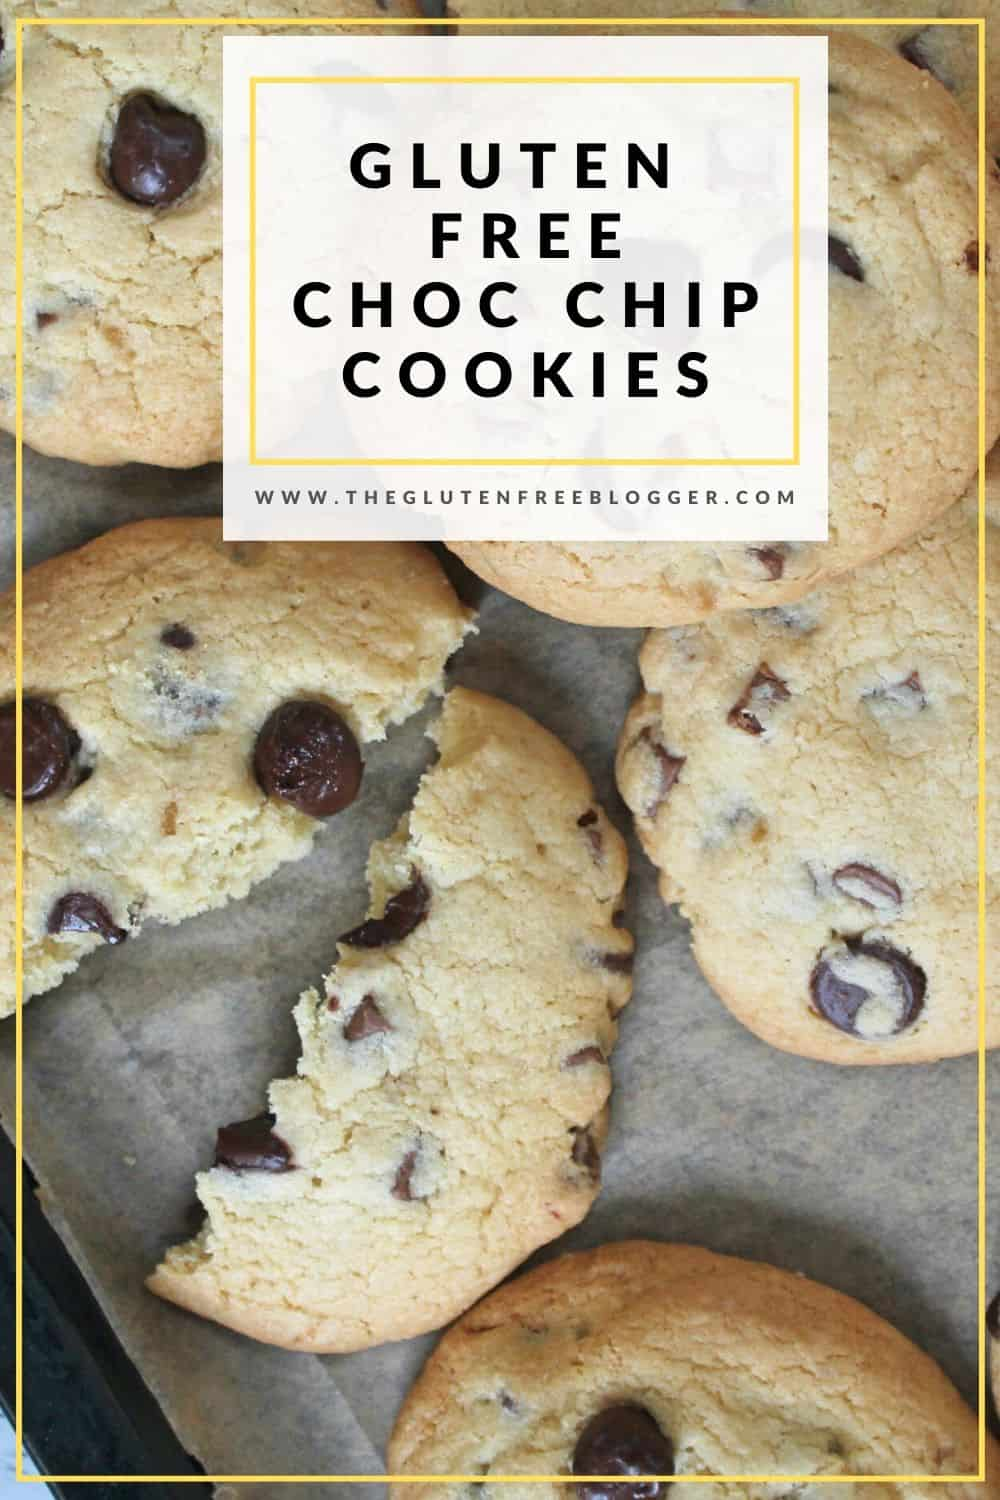 gluten free chocolate chip cookies choc chip coeliac